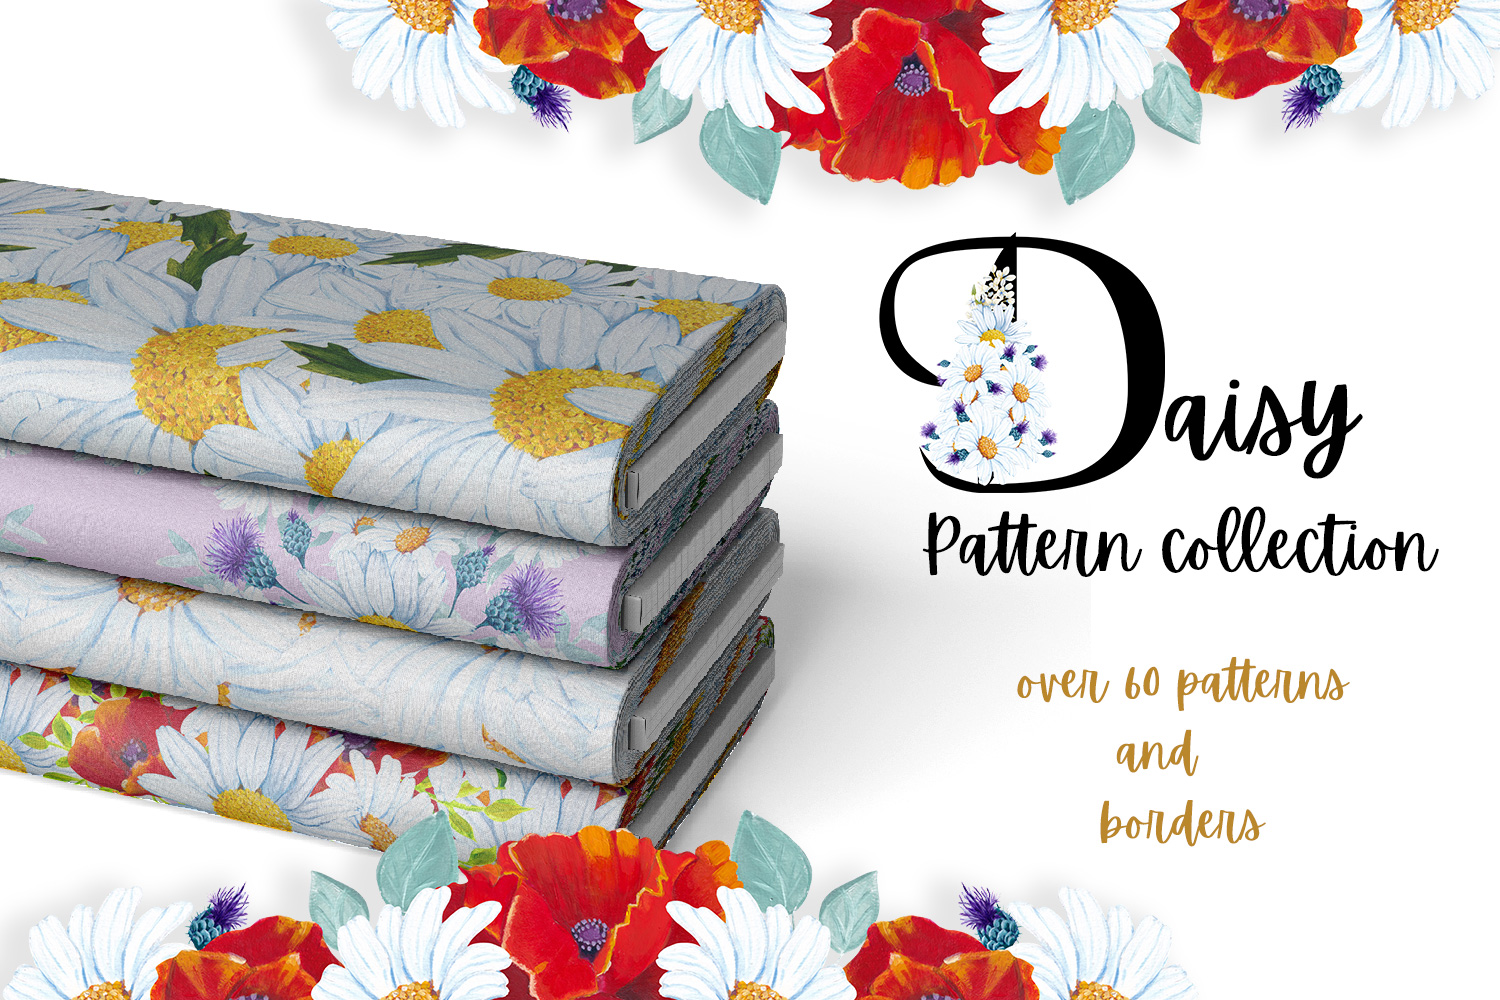 Download Free Daisy Pattern Collection Graphic By Andreea Eremia Design for Cricut Explore, Silhouette and other cutting machines.